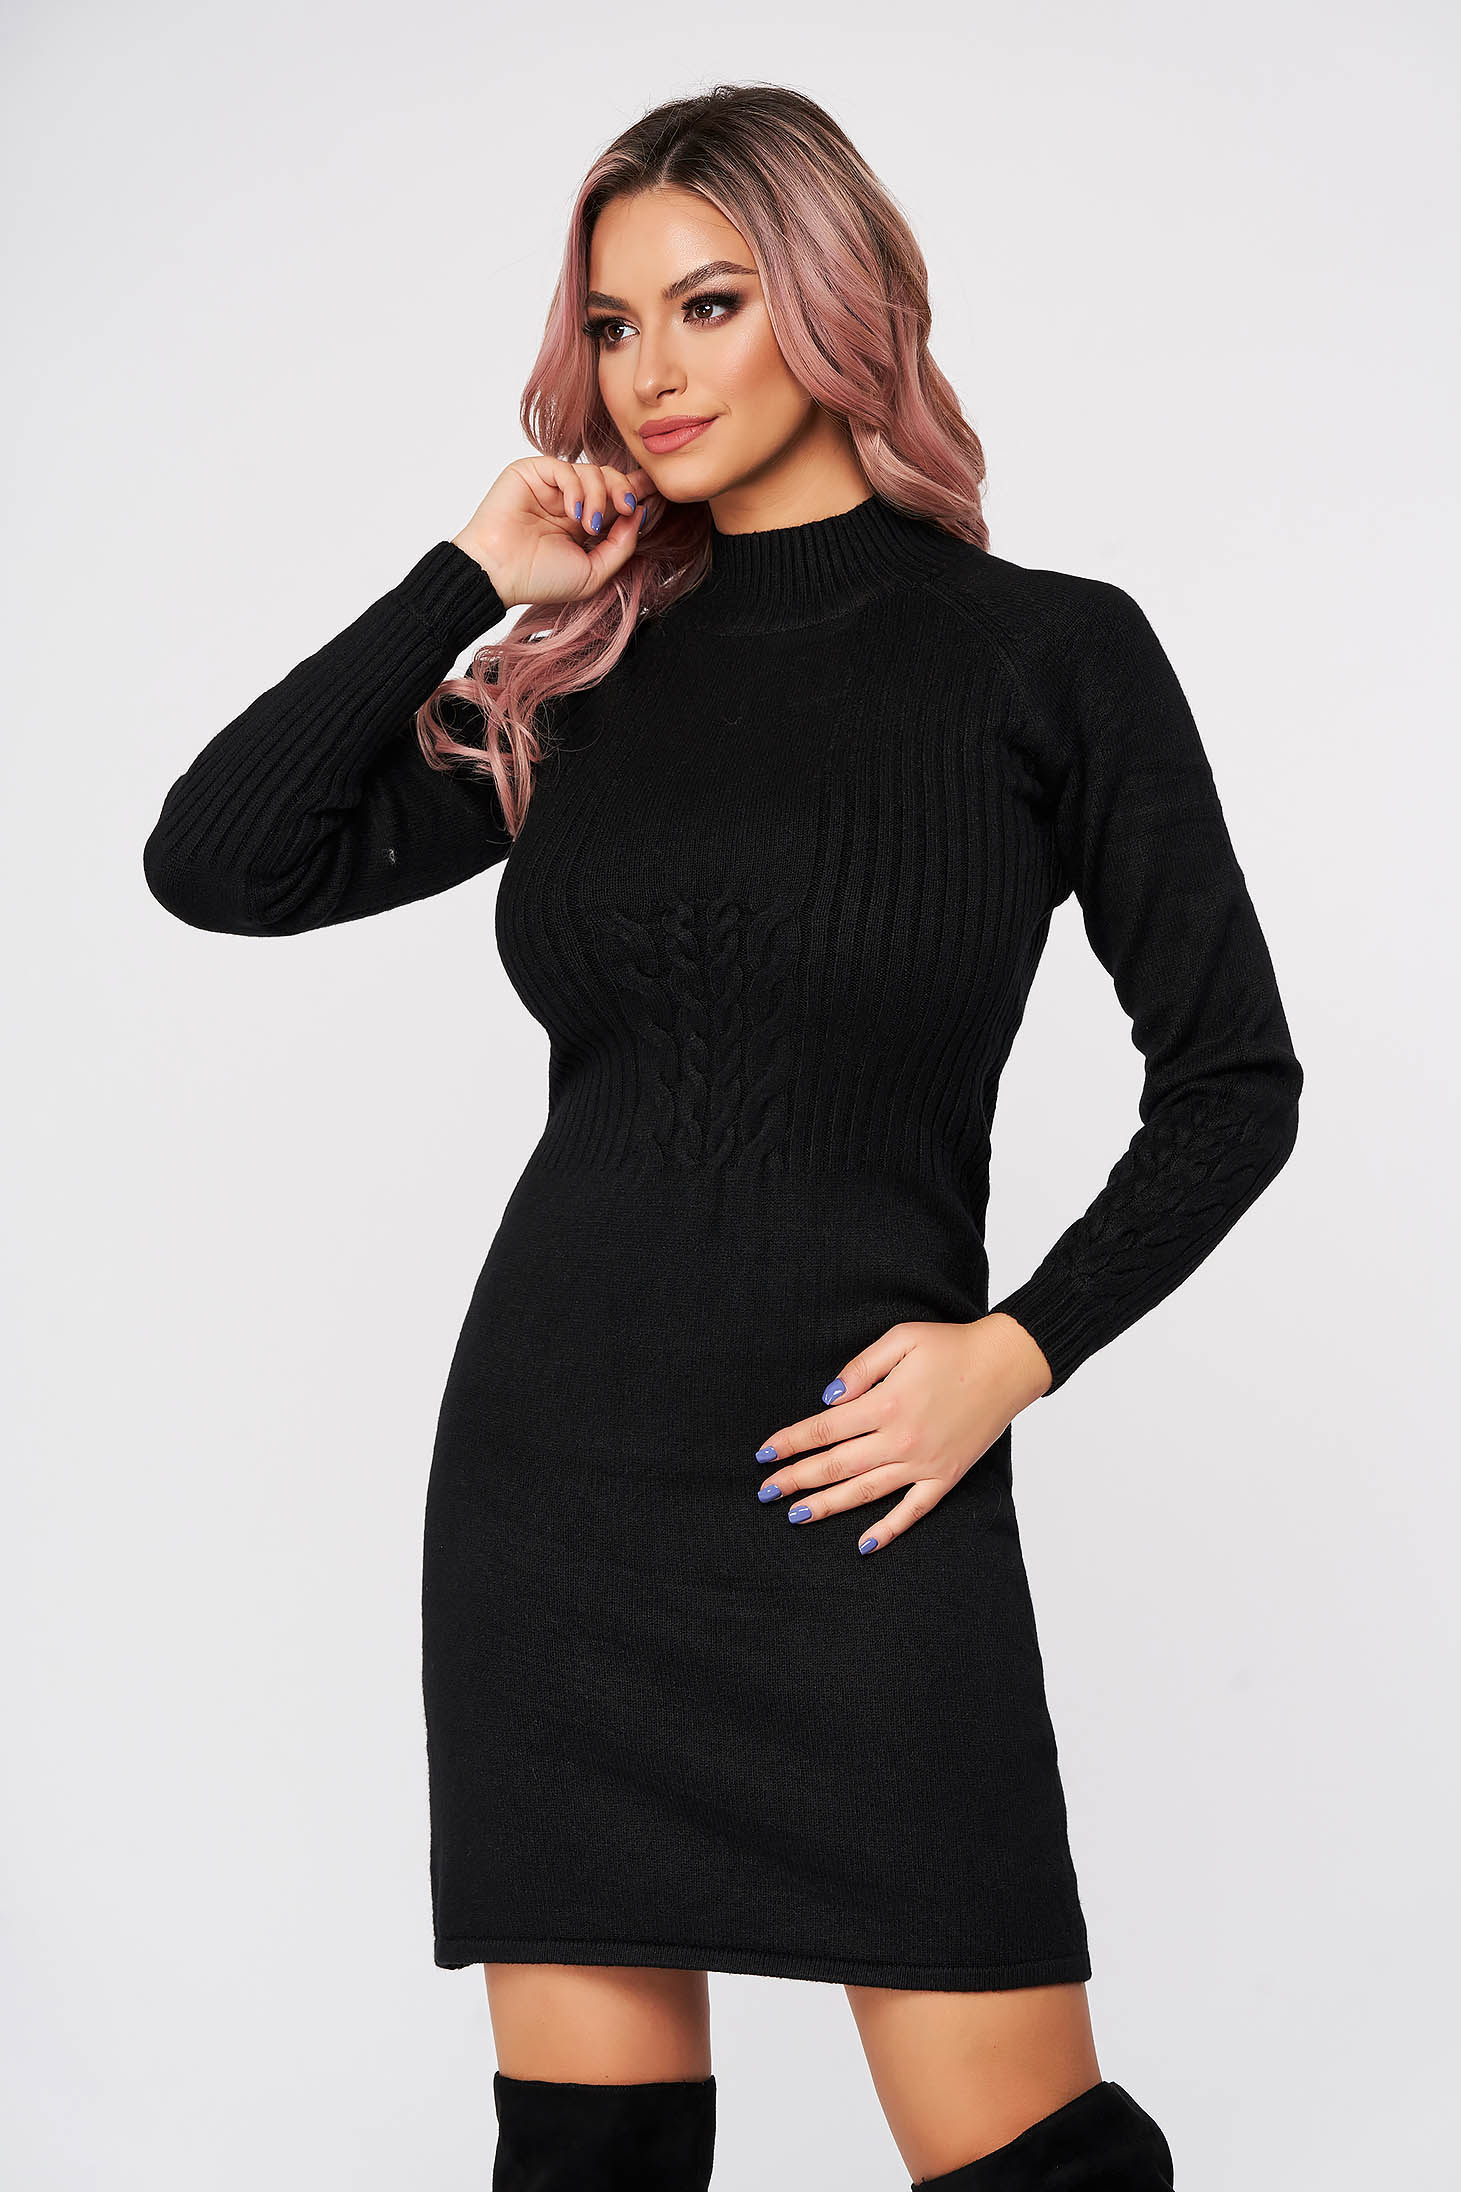 Black dress short cut daily cloche knitted fabric with turtle neck